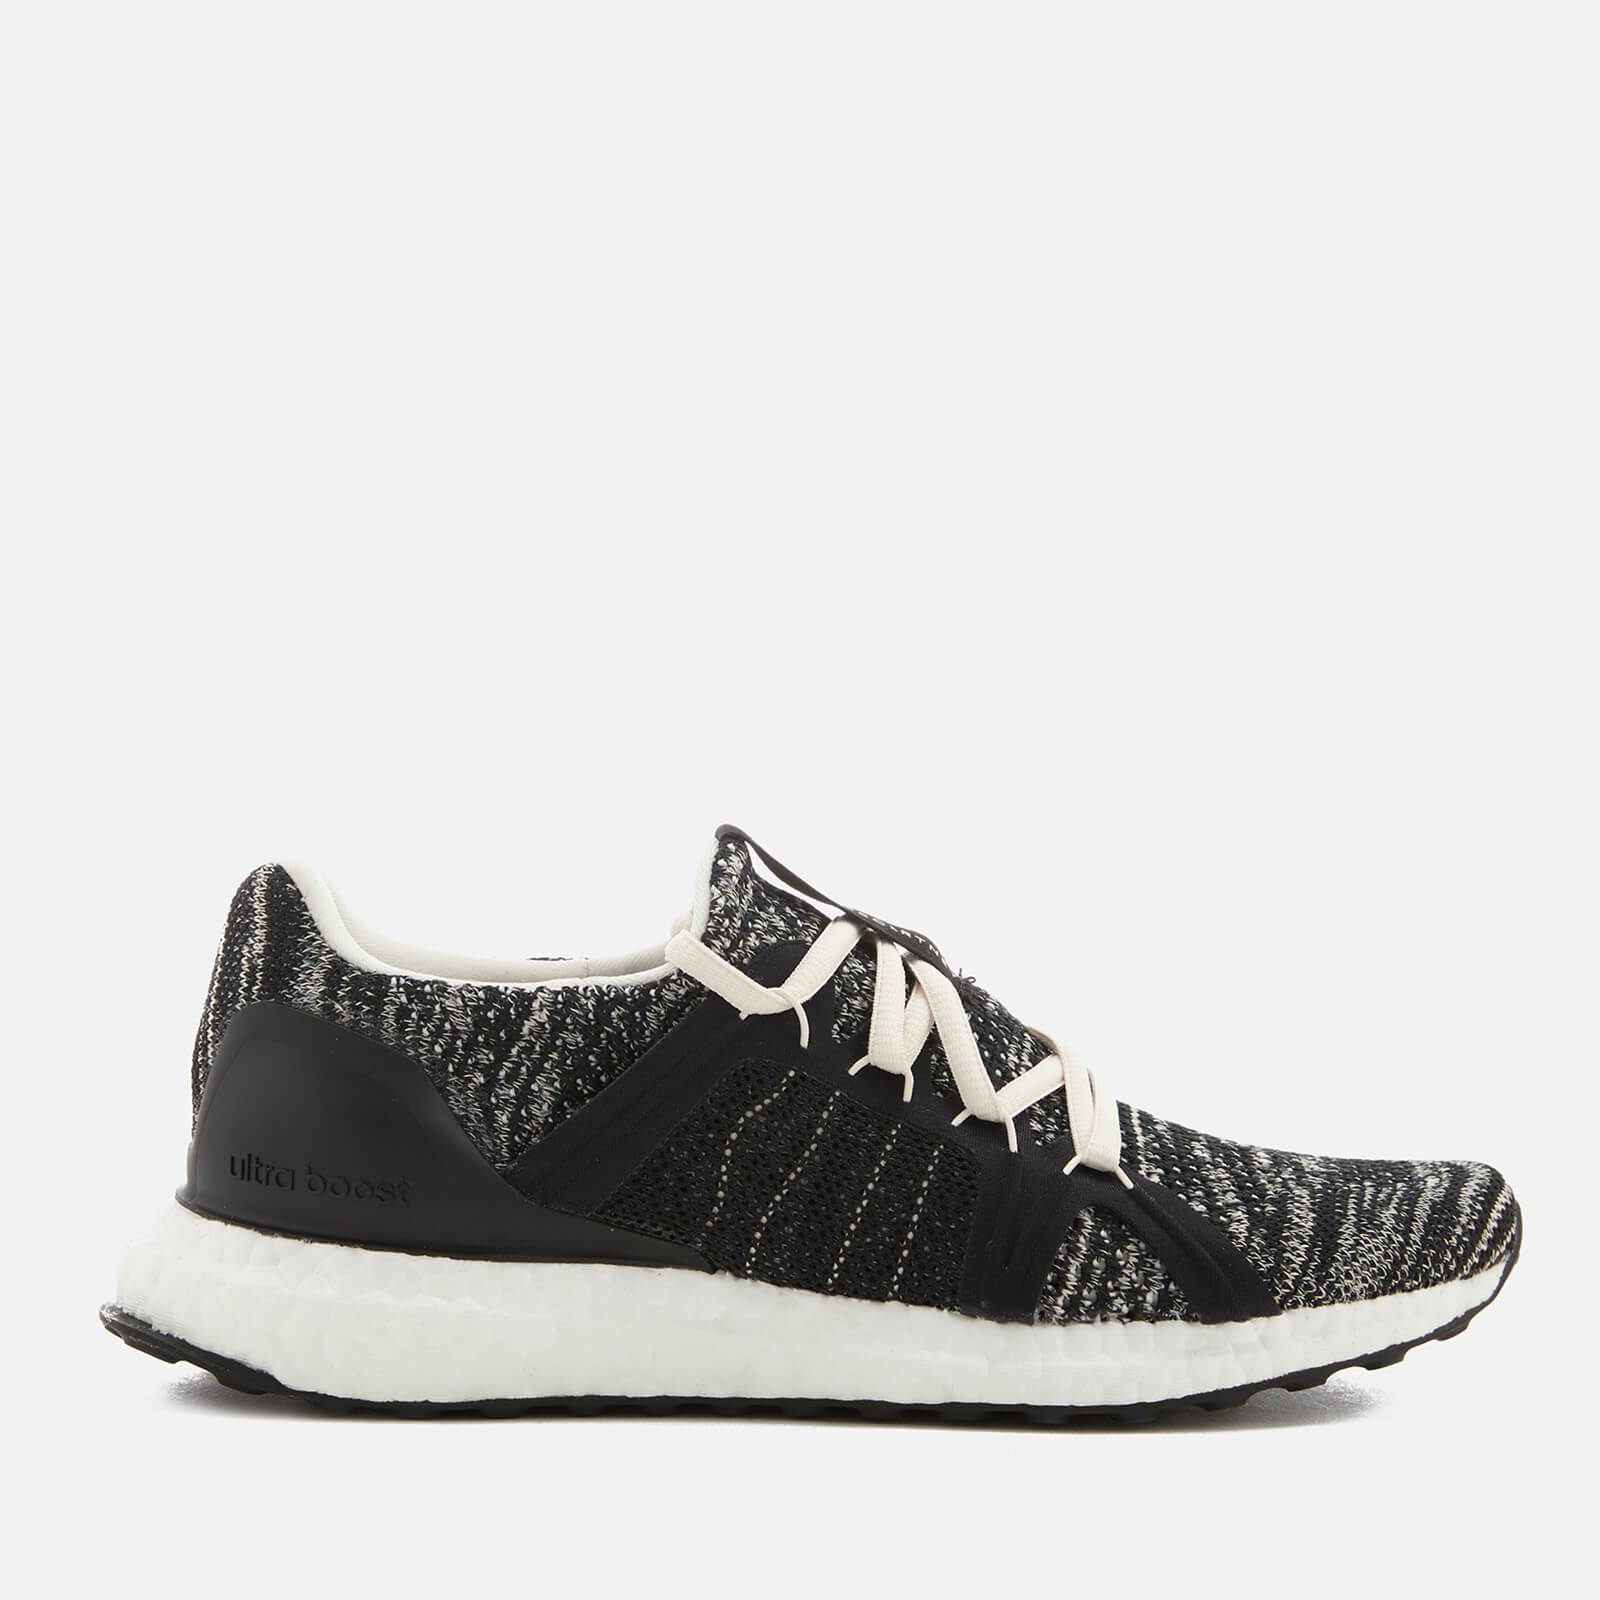 latest collection new arrival reputable site adidas by Stella McCartney Women's Ultraboost Parley Trainers - Core  Black/White